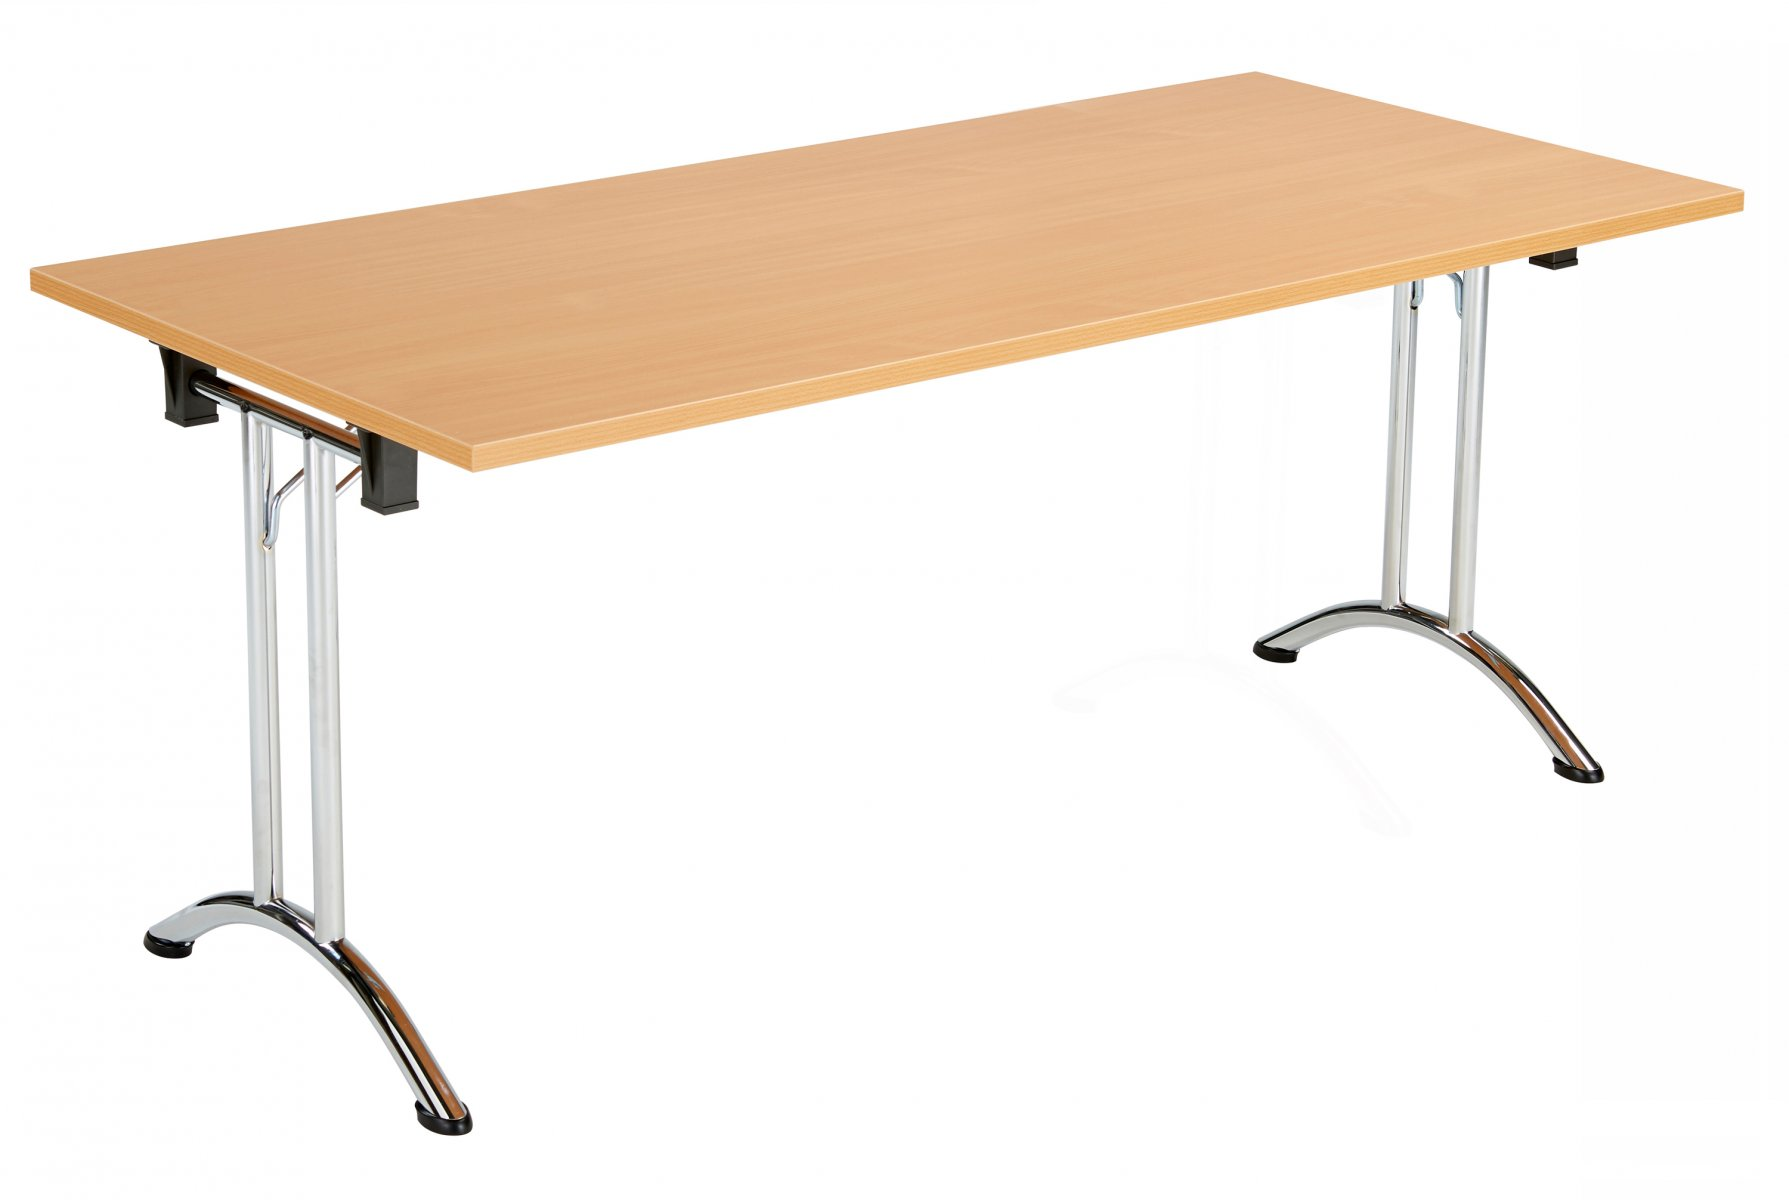 Union Rectangular 160 x 80 Folding Meeting Table - Beech with Chrome Frame